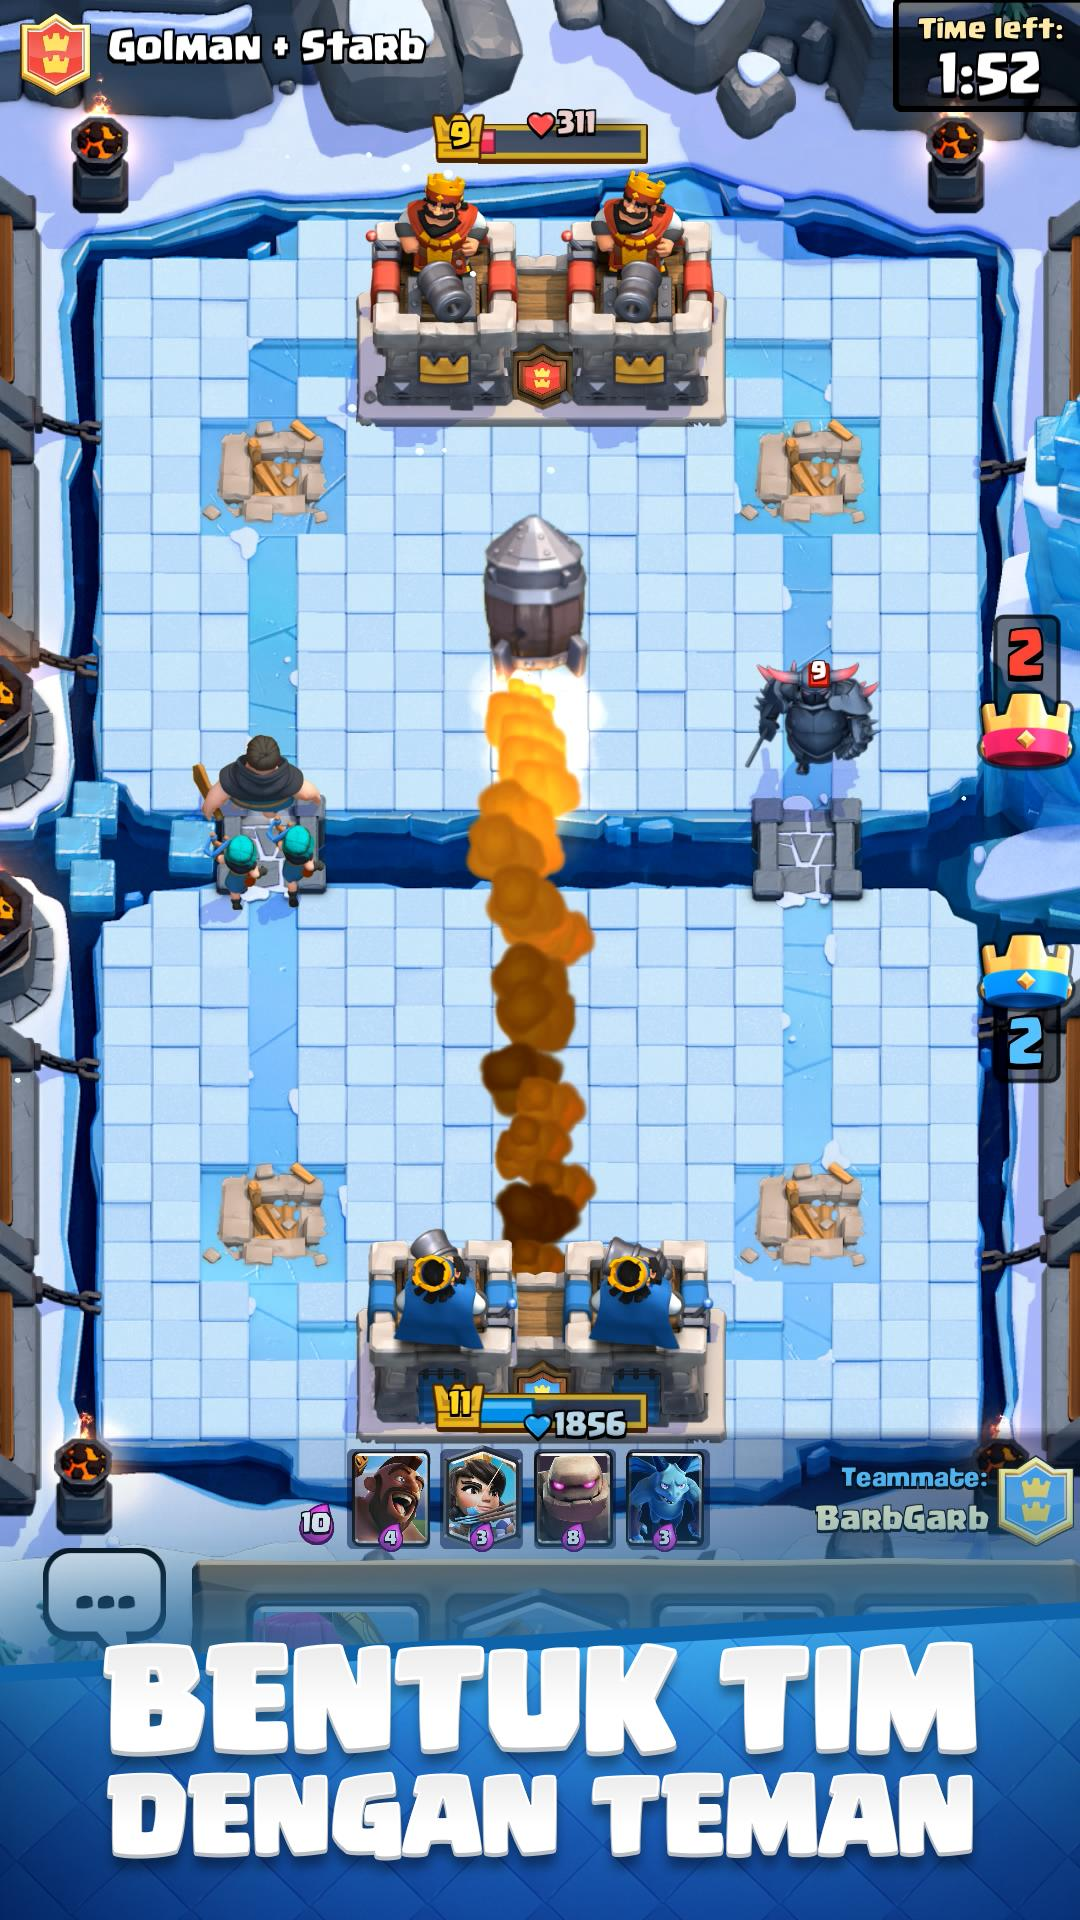 Clash Royale Real Time Strategy Card Game From Supercell Apk 3 4 2 Download And Update In Apkpure App